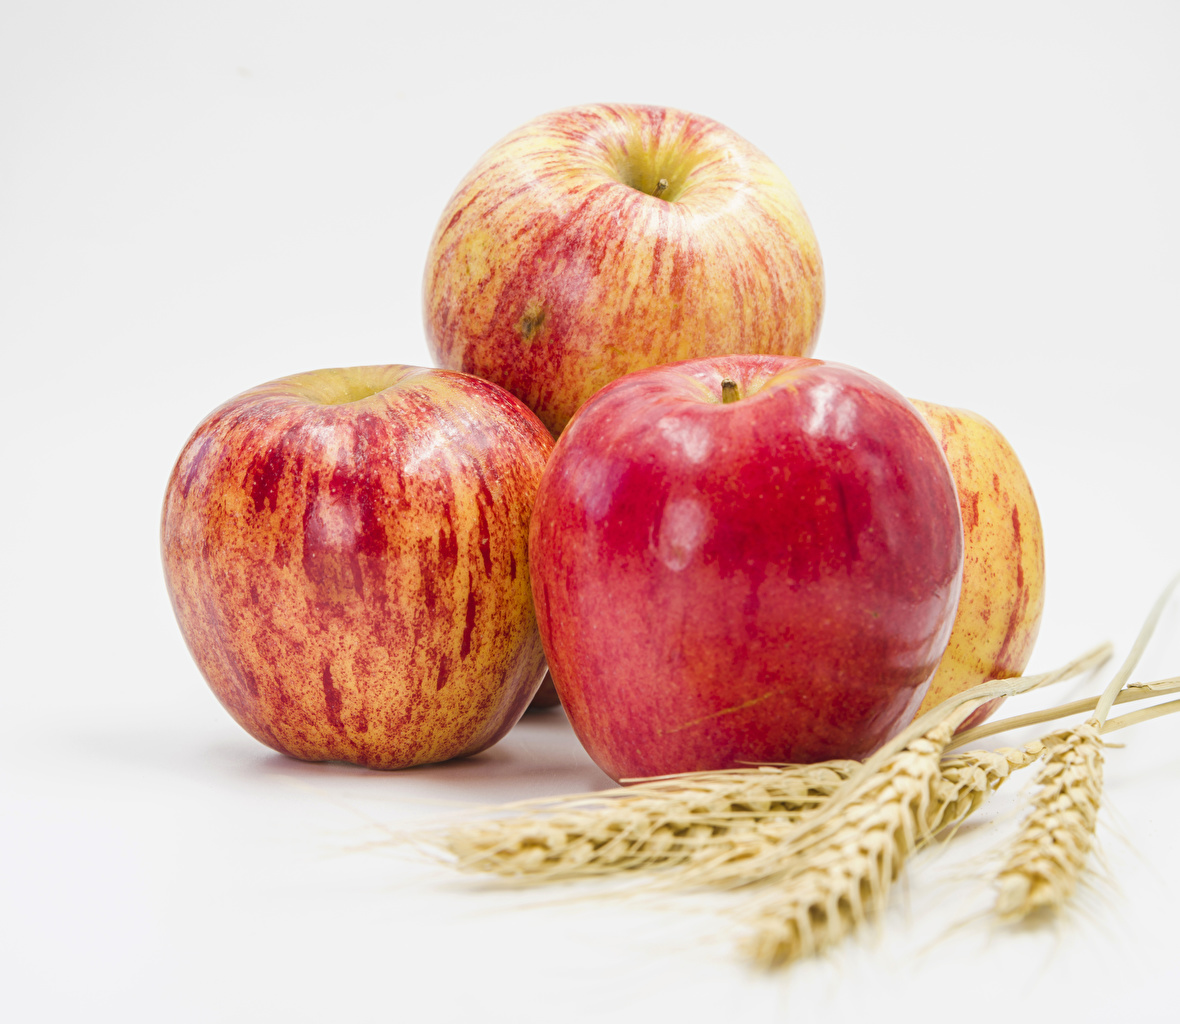 Images Apples Ear botany Food Closeup White background